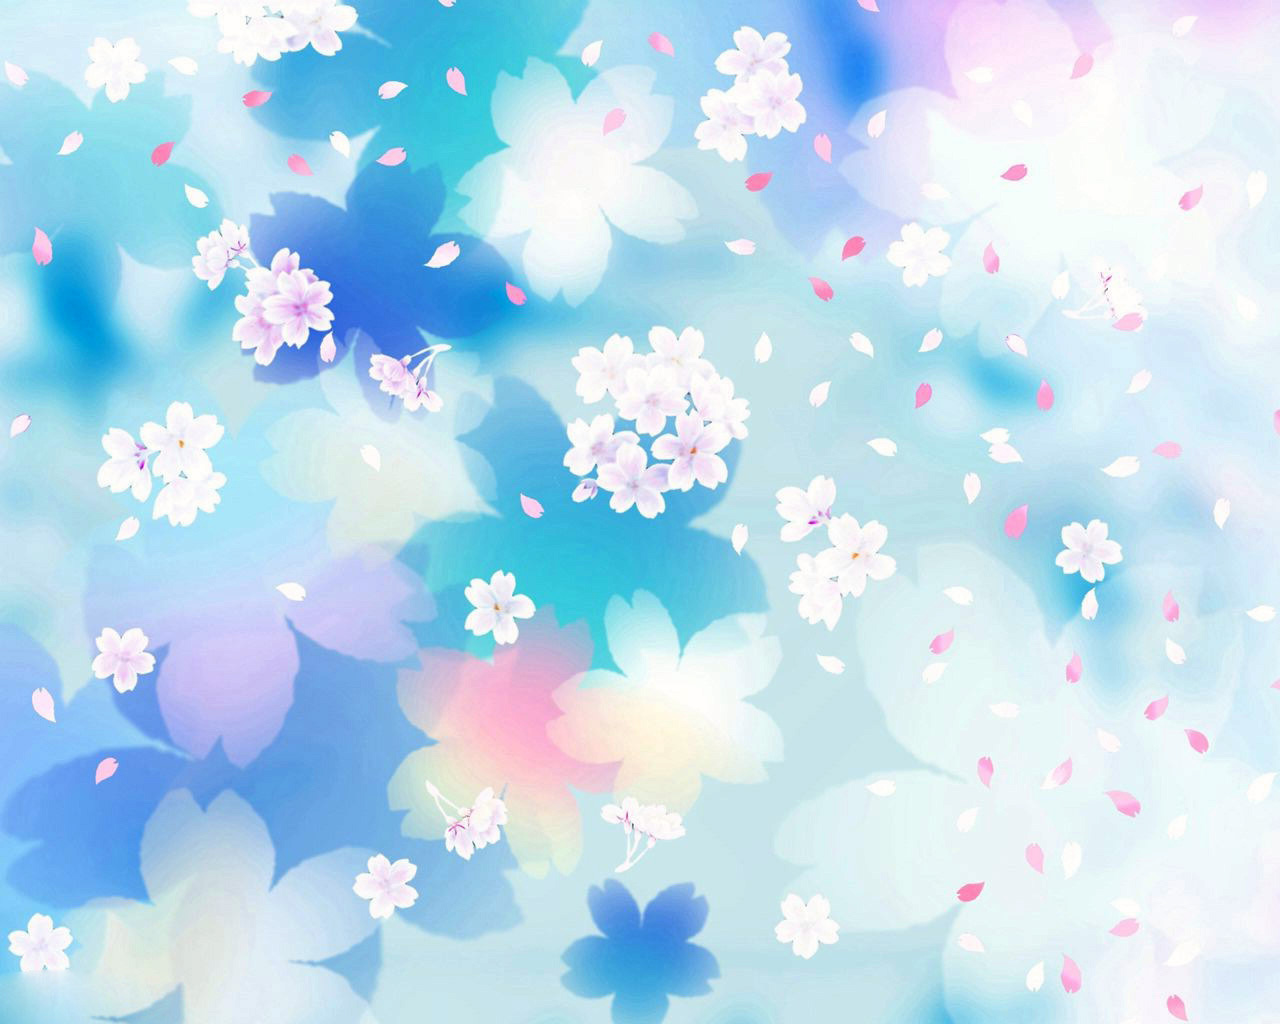 Blur Blue Flowers Backgrounds